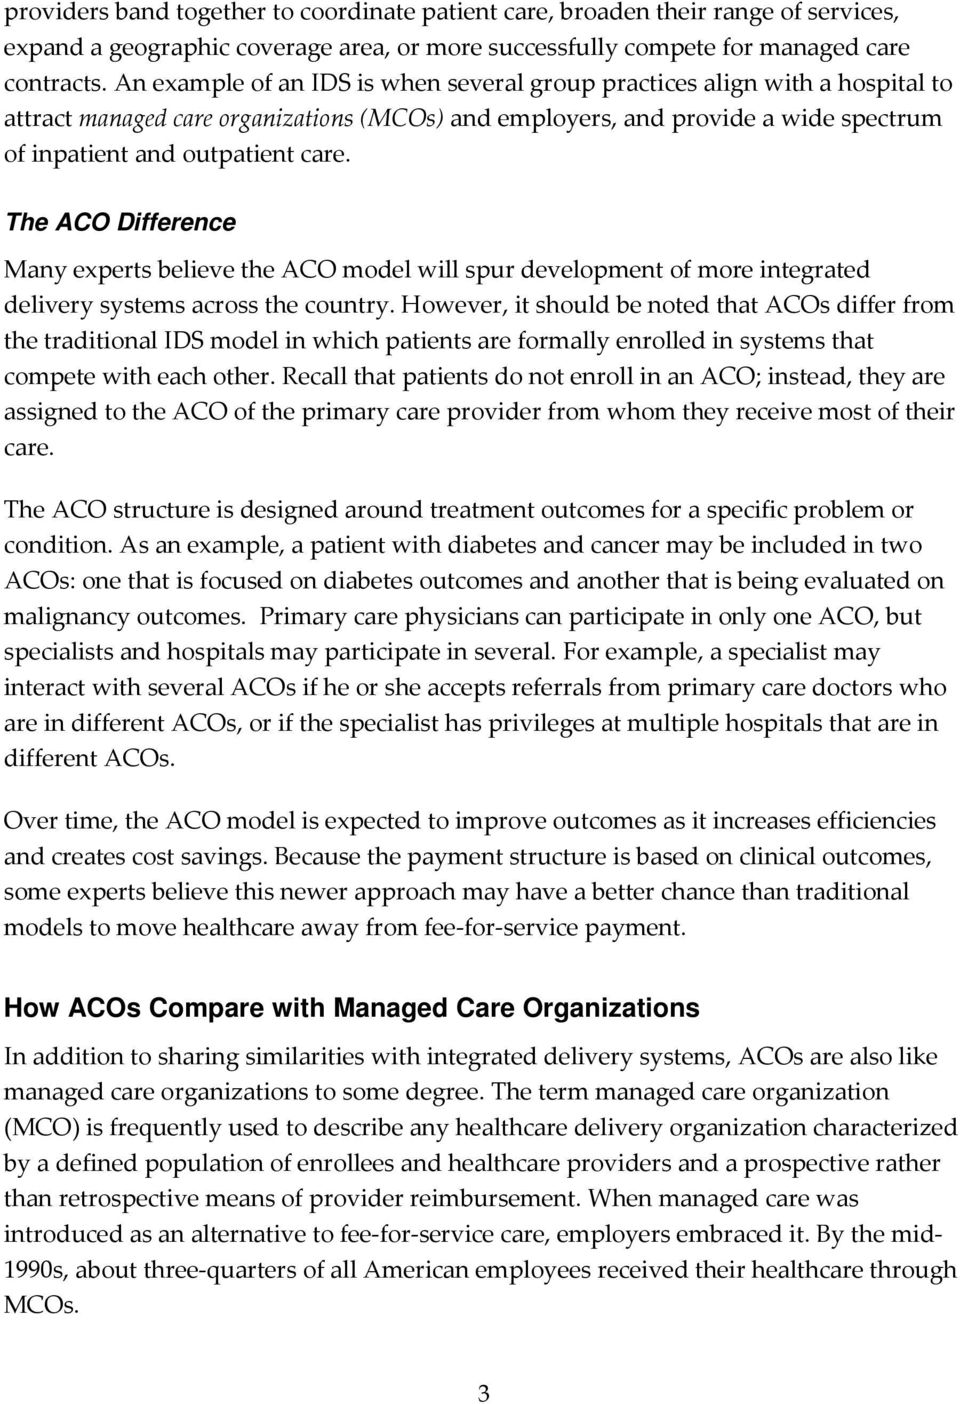 The ACO Difference Many experts believe the ACO model will spur development of more integrated delivery systems across the country.